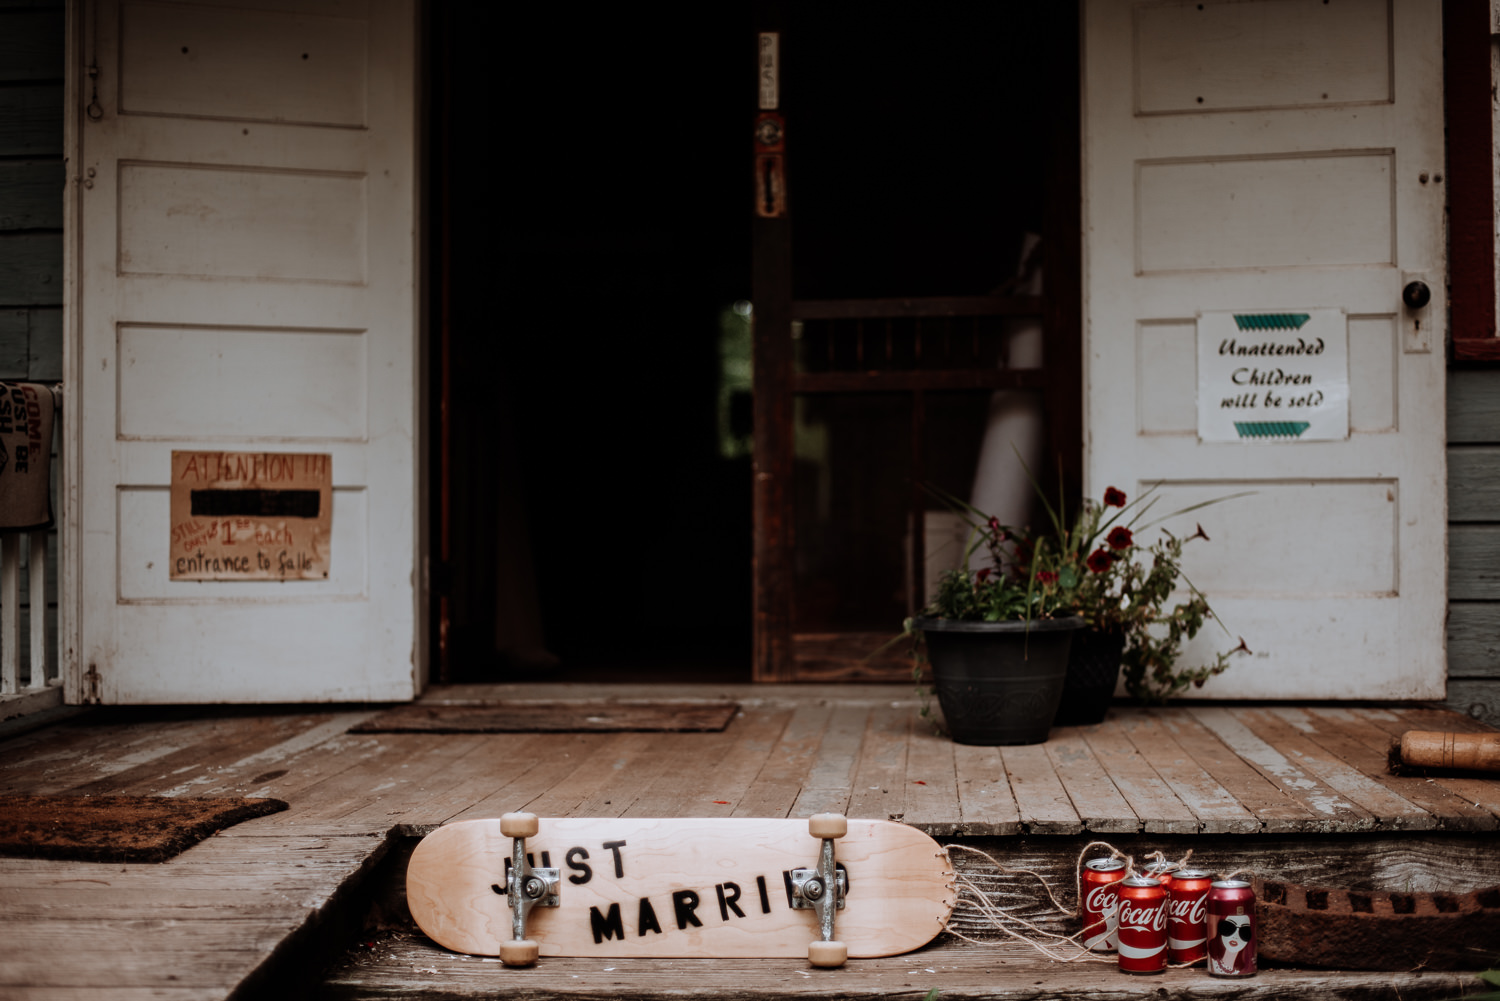 just married skateboard